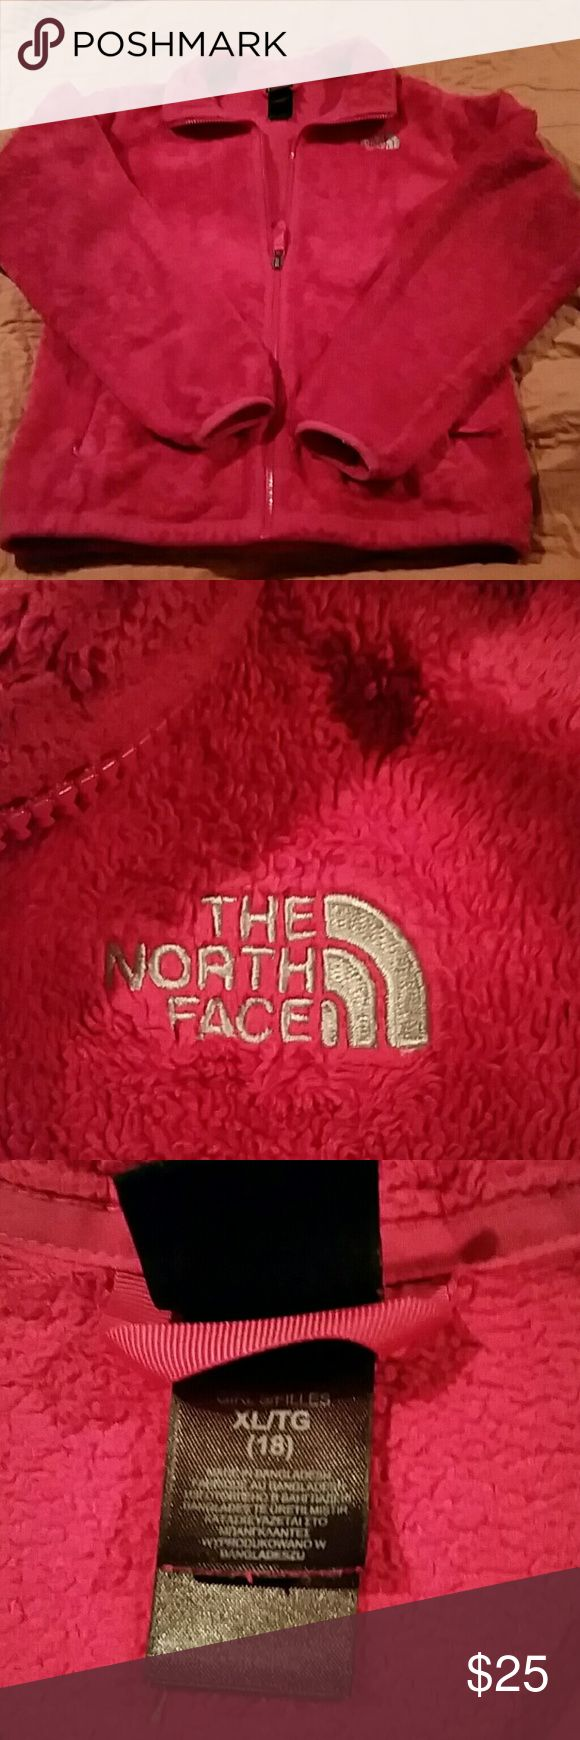 Kids North Face fleece Pink north face fleece size 18 kids, w/plenty of wear left.  No rips tears or stains.  Smoke free home. North Face Jackets & Coats